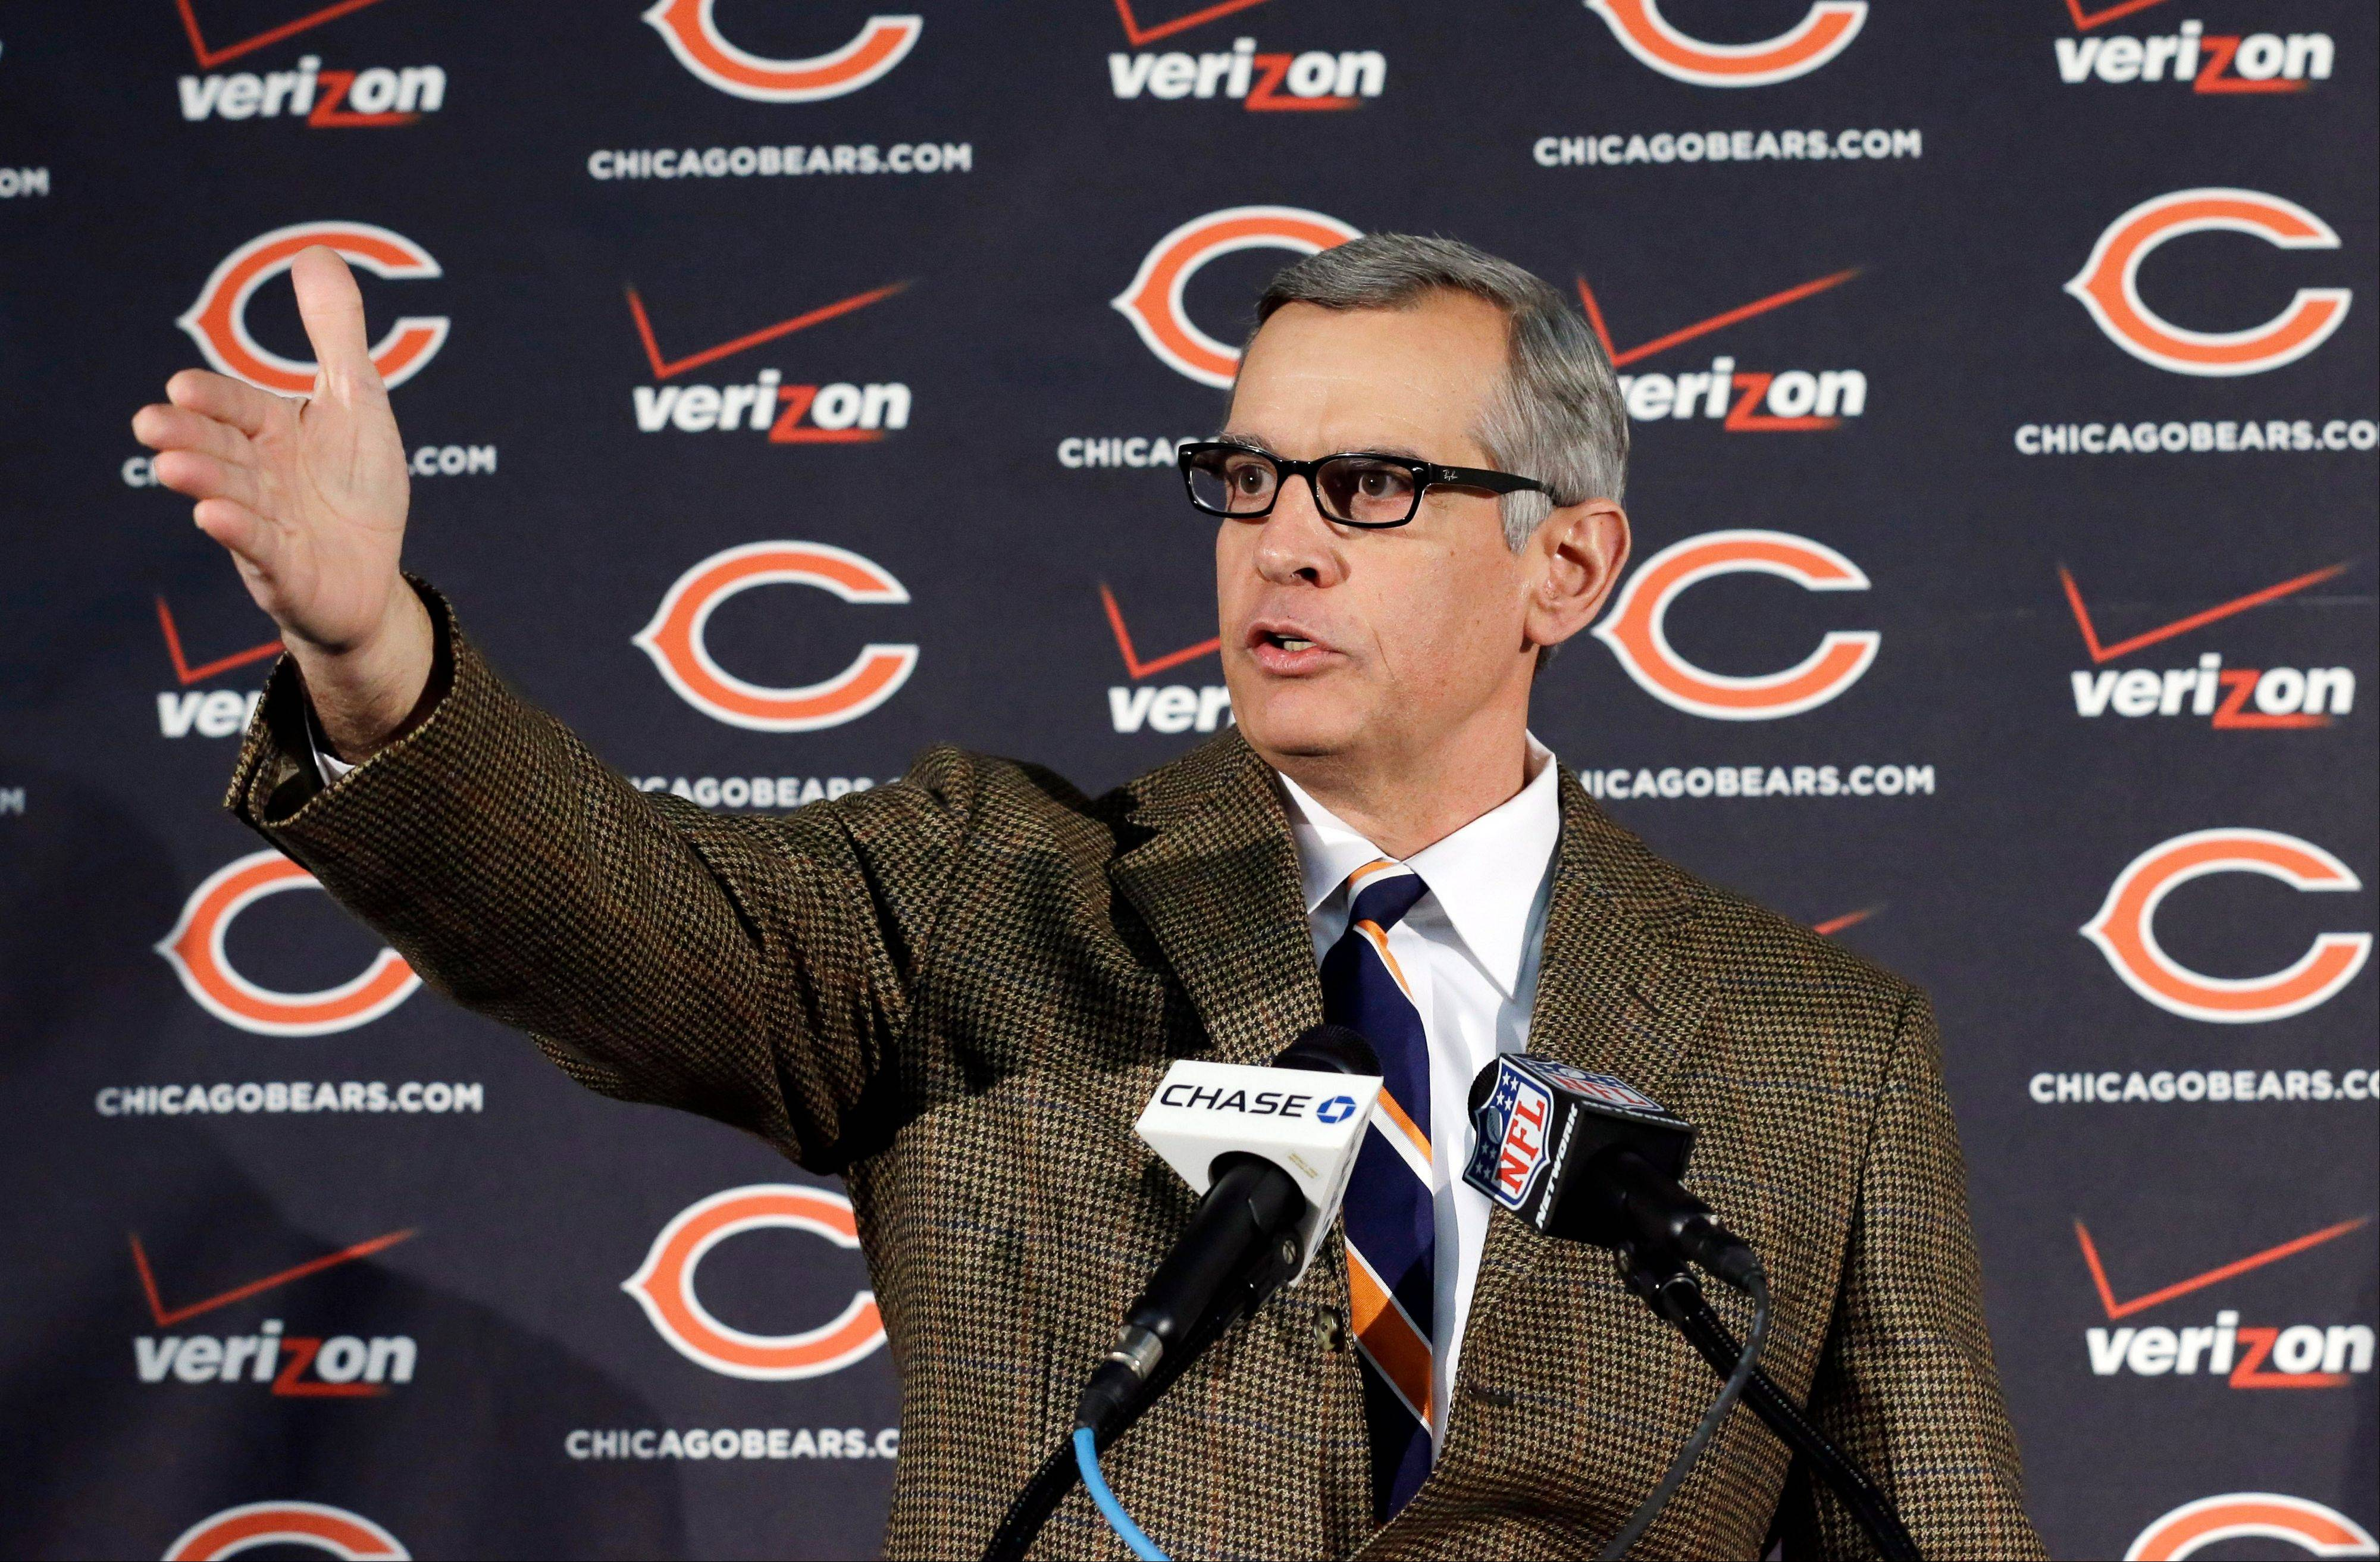 Chicago Bears general manager Phil Emery speaks at an NFL football news conference in Lake Forest, Ill., Tuesday, Jan. 1, 2013. A day after the Bears fired head coach Lovie Smith, Emery explained his decision to the media. AP Photo/Nam Y. Huh)